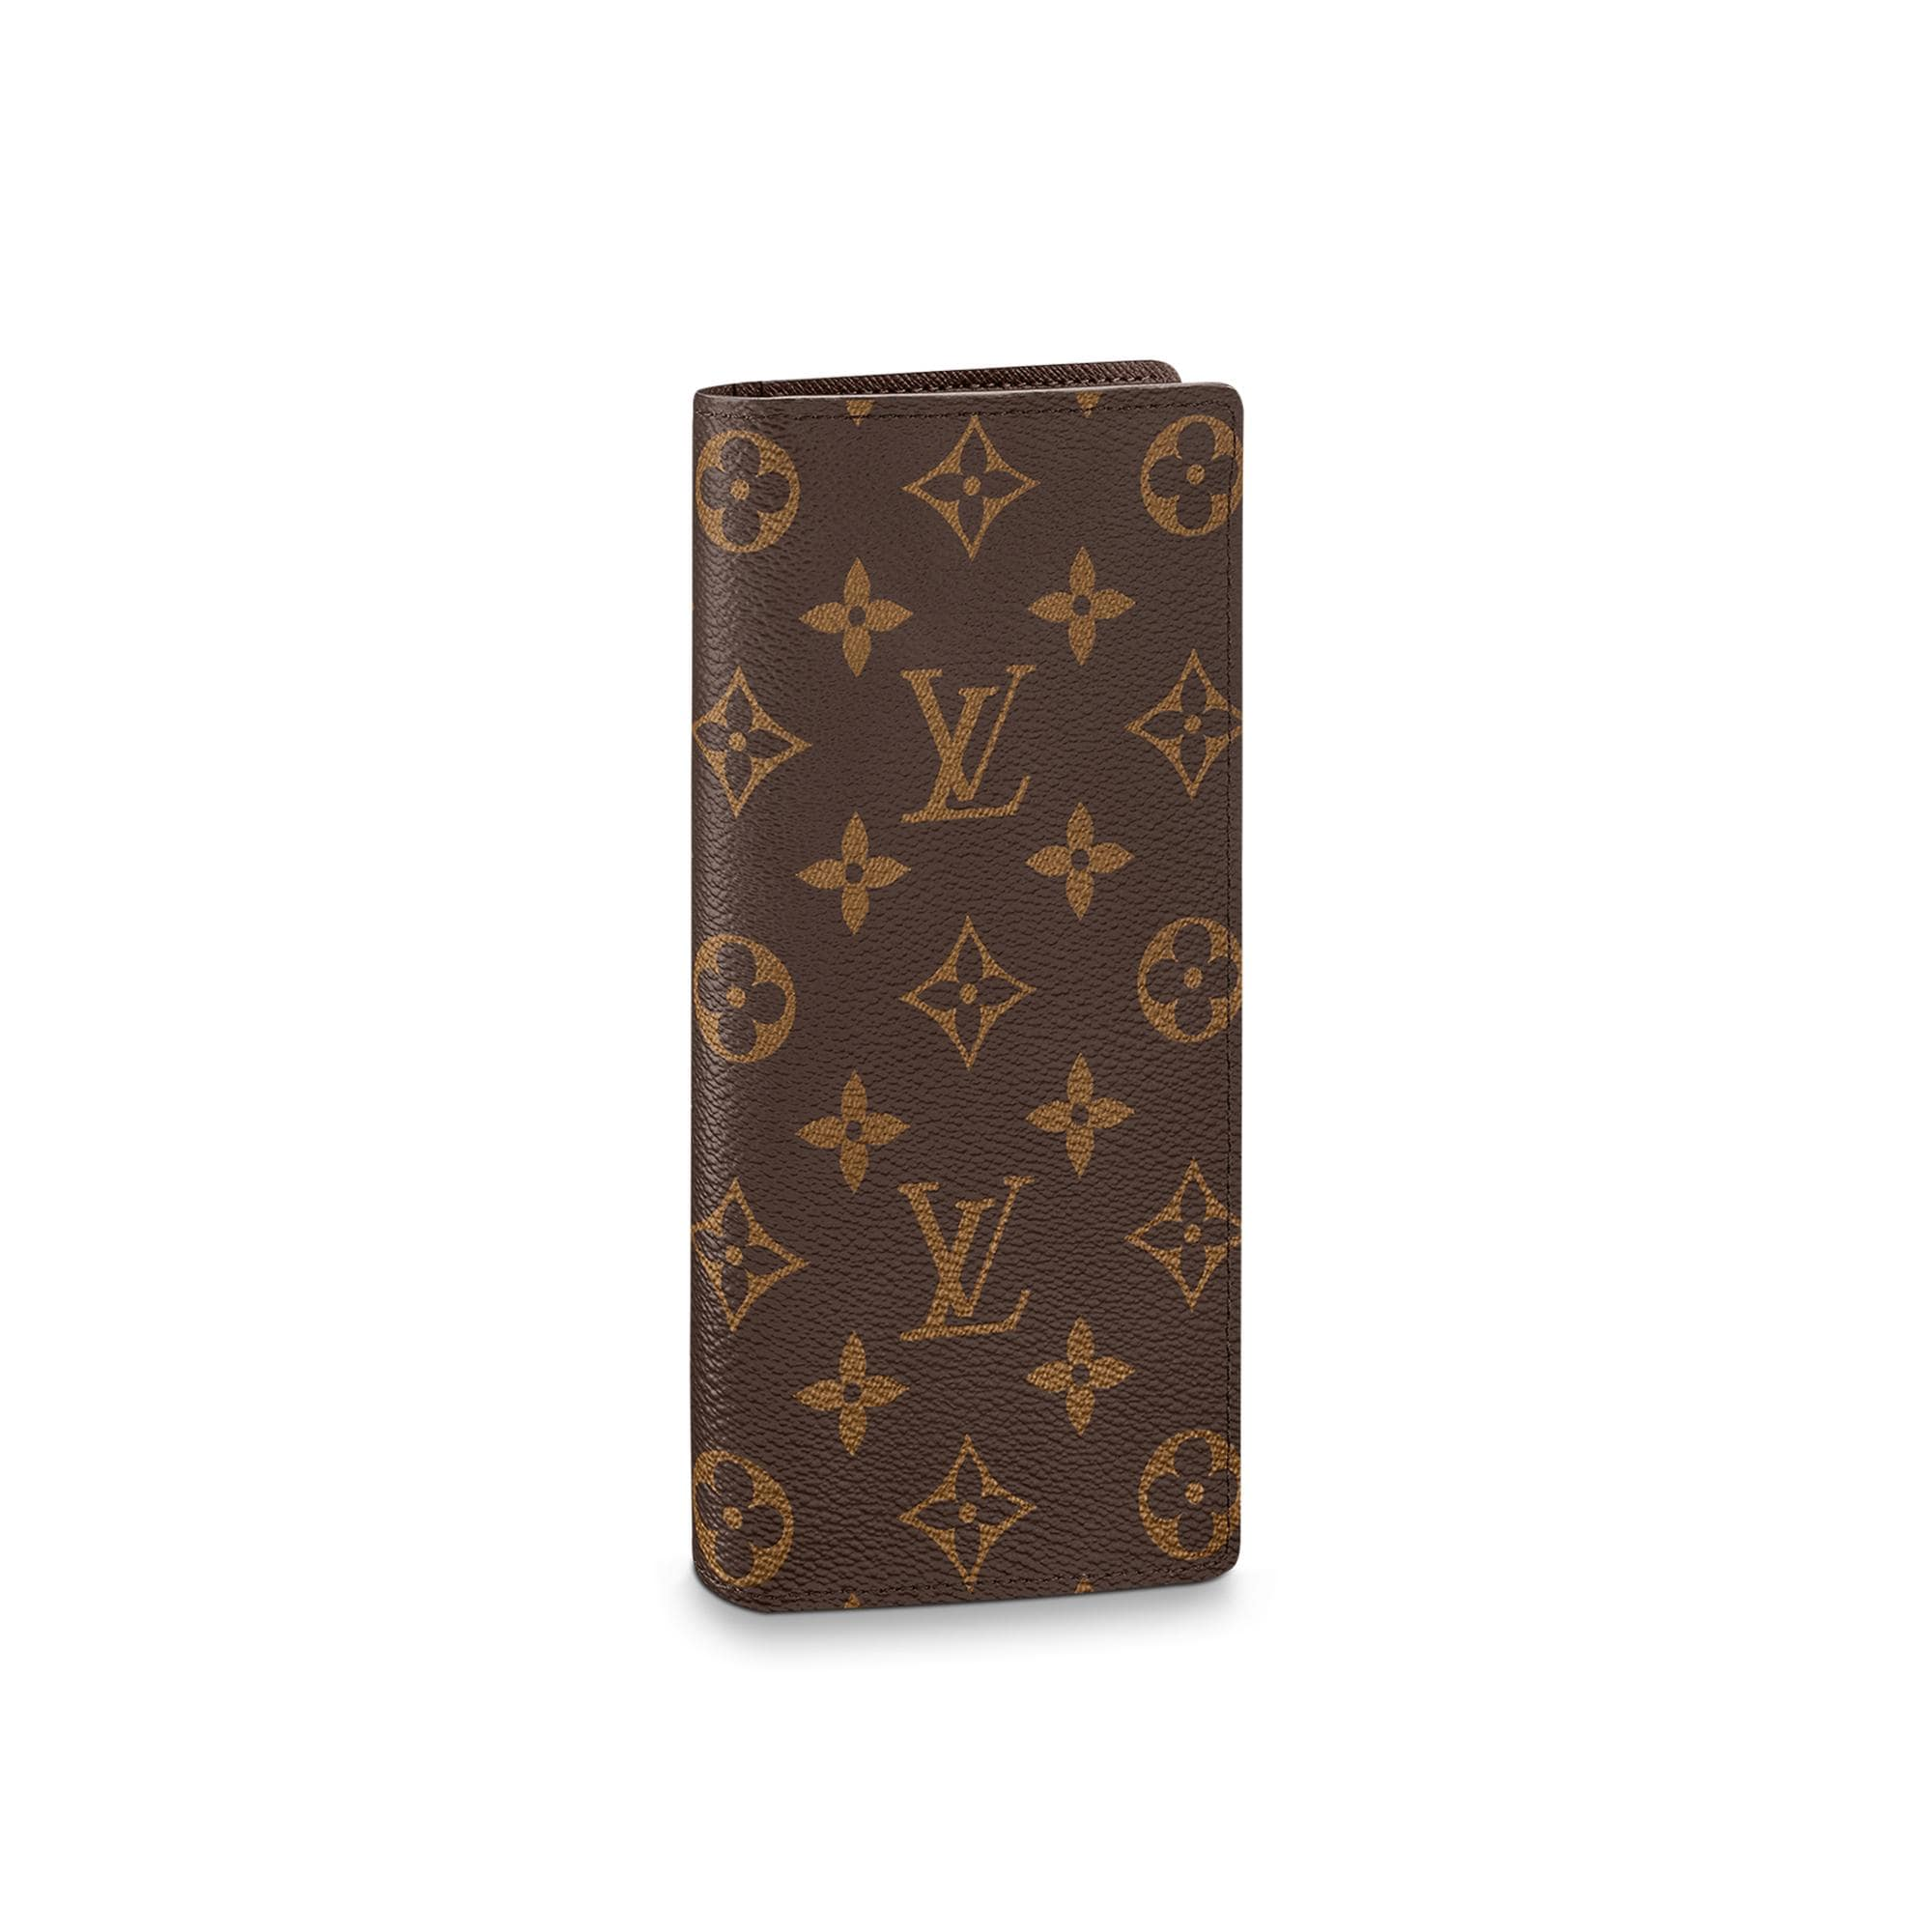 Brazza Wallet Monogram Canvas  Small Leather Goods